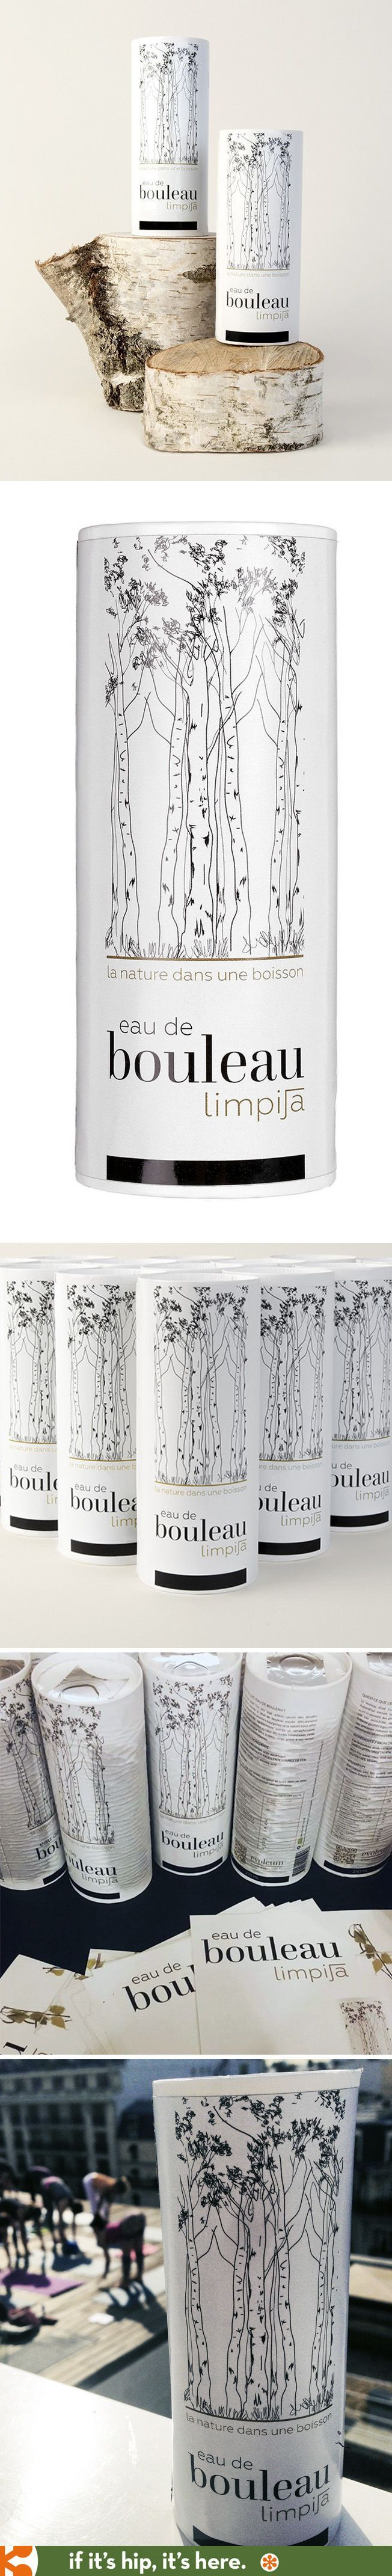 Limpija Eau de Bouleau (Birch Water from Finland) by Evoleum